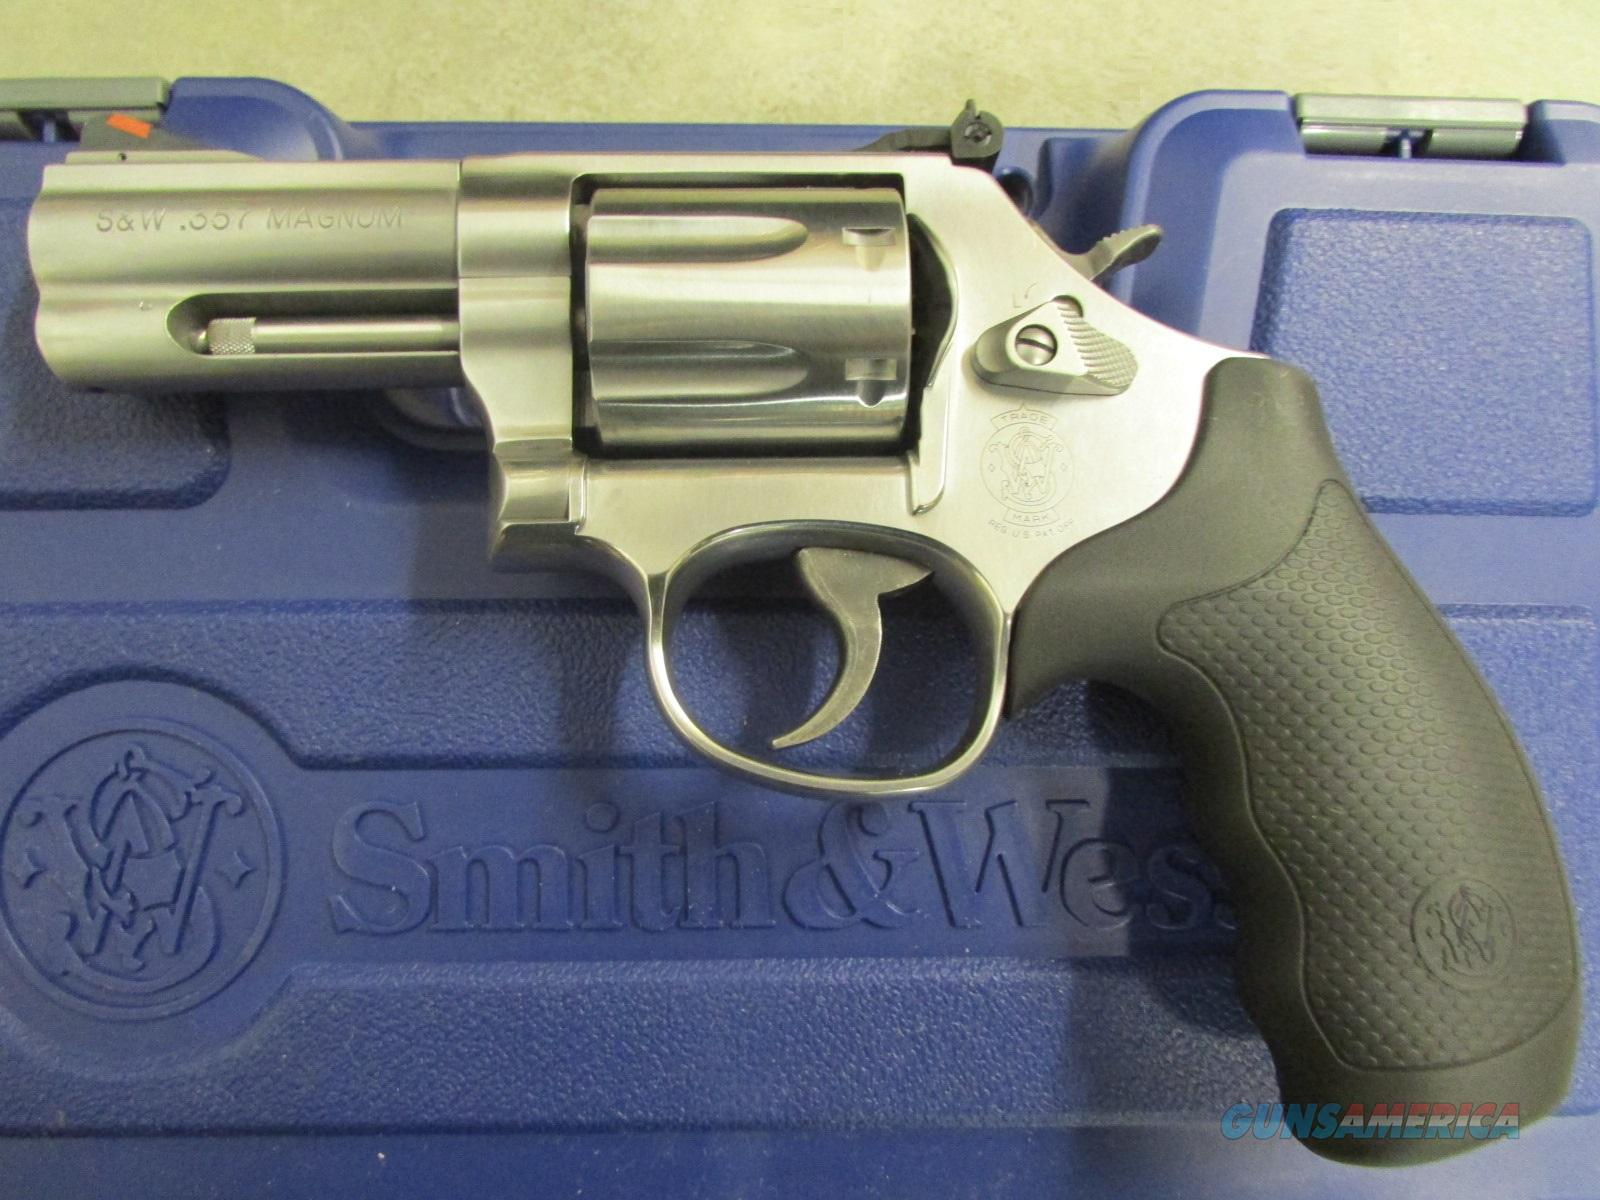 Smith & Wesson Model 686 Plus .357 Magnum  Guns > Pistols > Smith & Wesson Revolvers > Full Frame Revolver